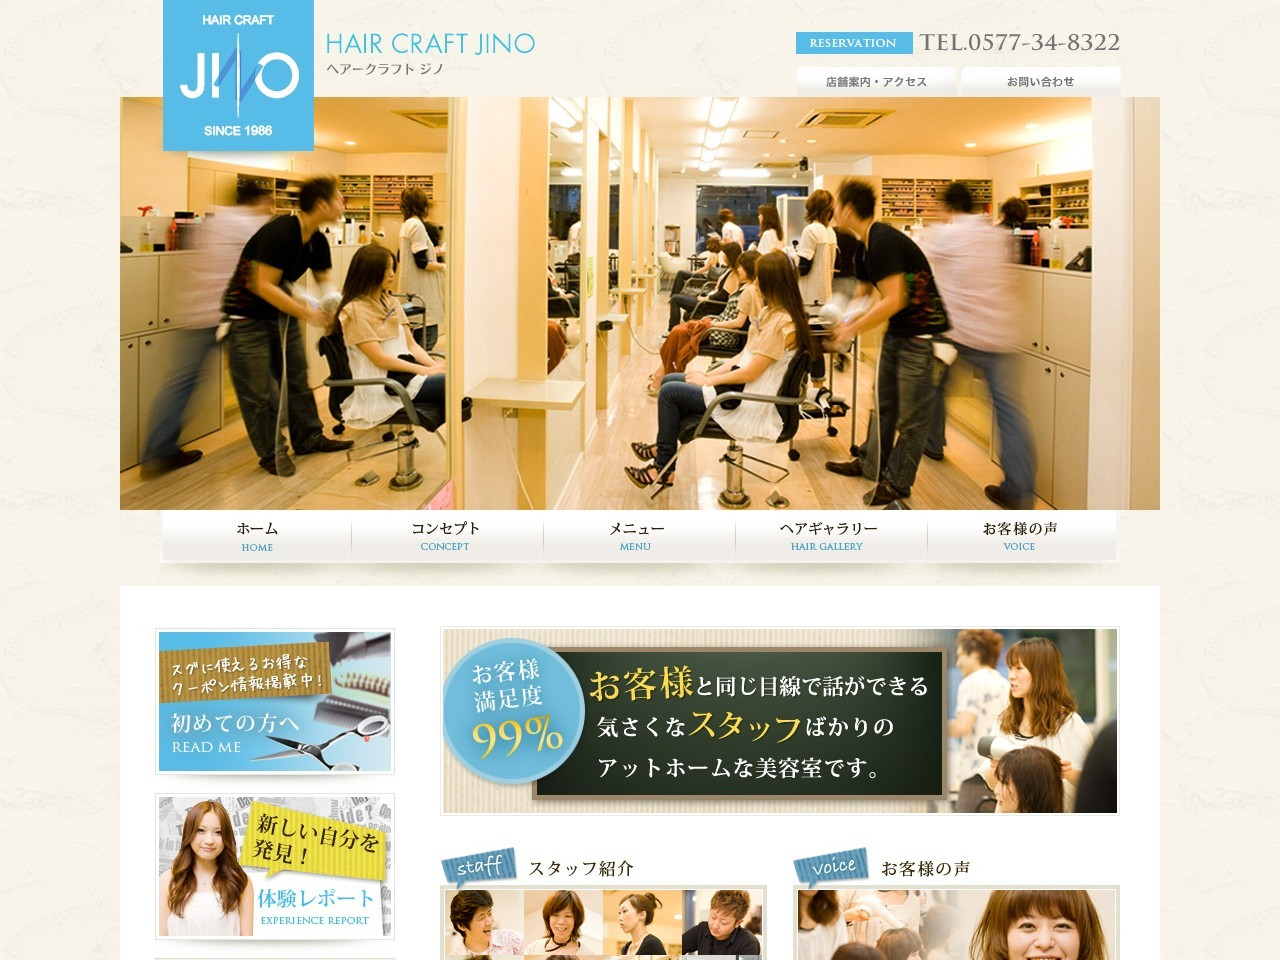 HAIR CRAFT JINO